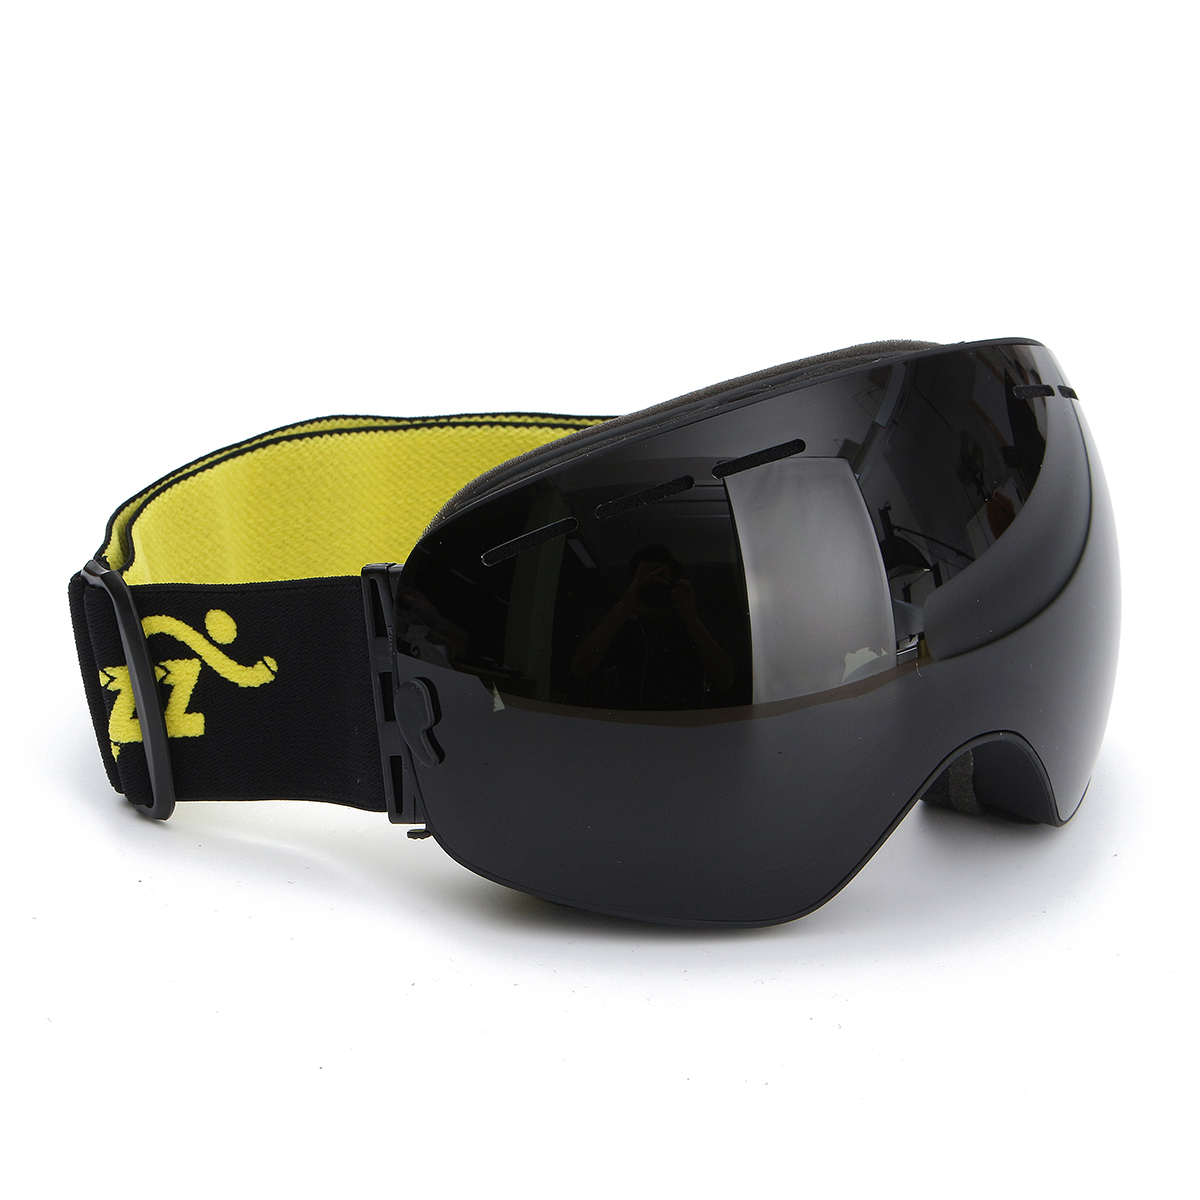 COPOZZ Spherical Dual-layer Lens Snowboard Goggles UV400 Anti-fog Skiing Glasses by